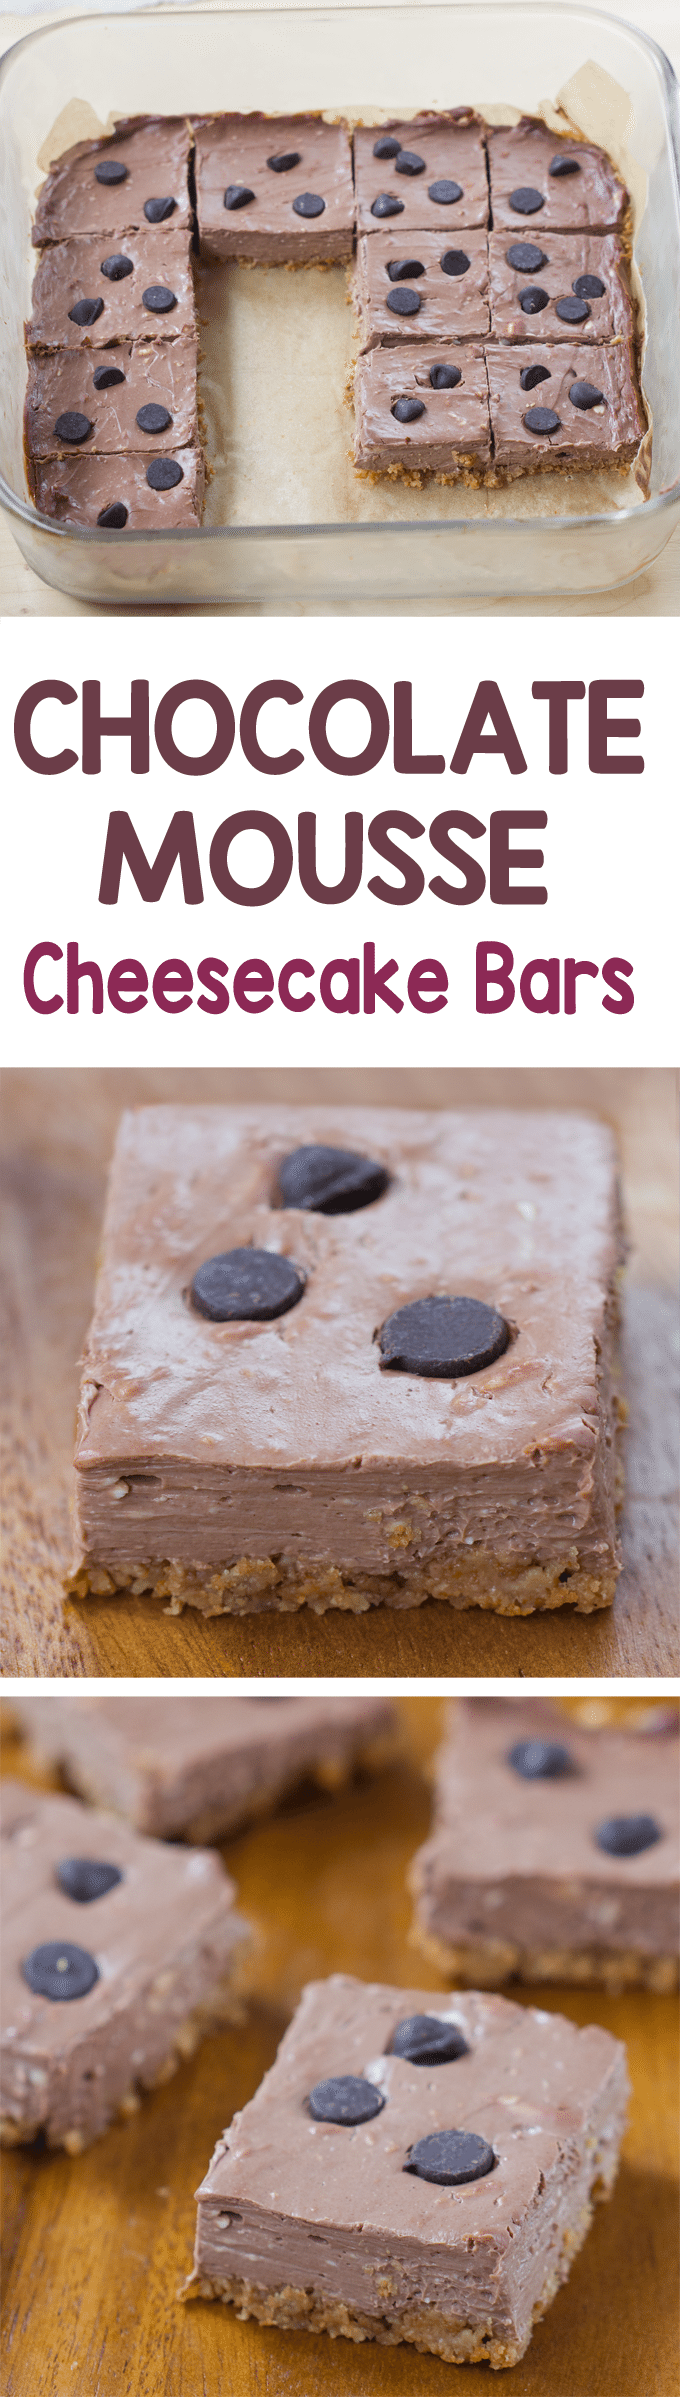 Chocolate Cheesecake Bars - Ingredients: 1/4 cup cocoa powder, 2/3 cup yogurt, 1/2 tsp vanilla, 1 tsp... Full recipe: https://chocolatecoveredkatie.com/2016/08/18/chocolate-mousse-cheesecake-bars/ @choccoveredkt